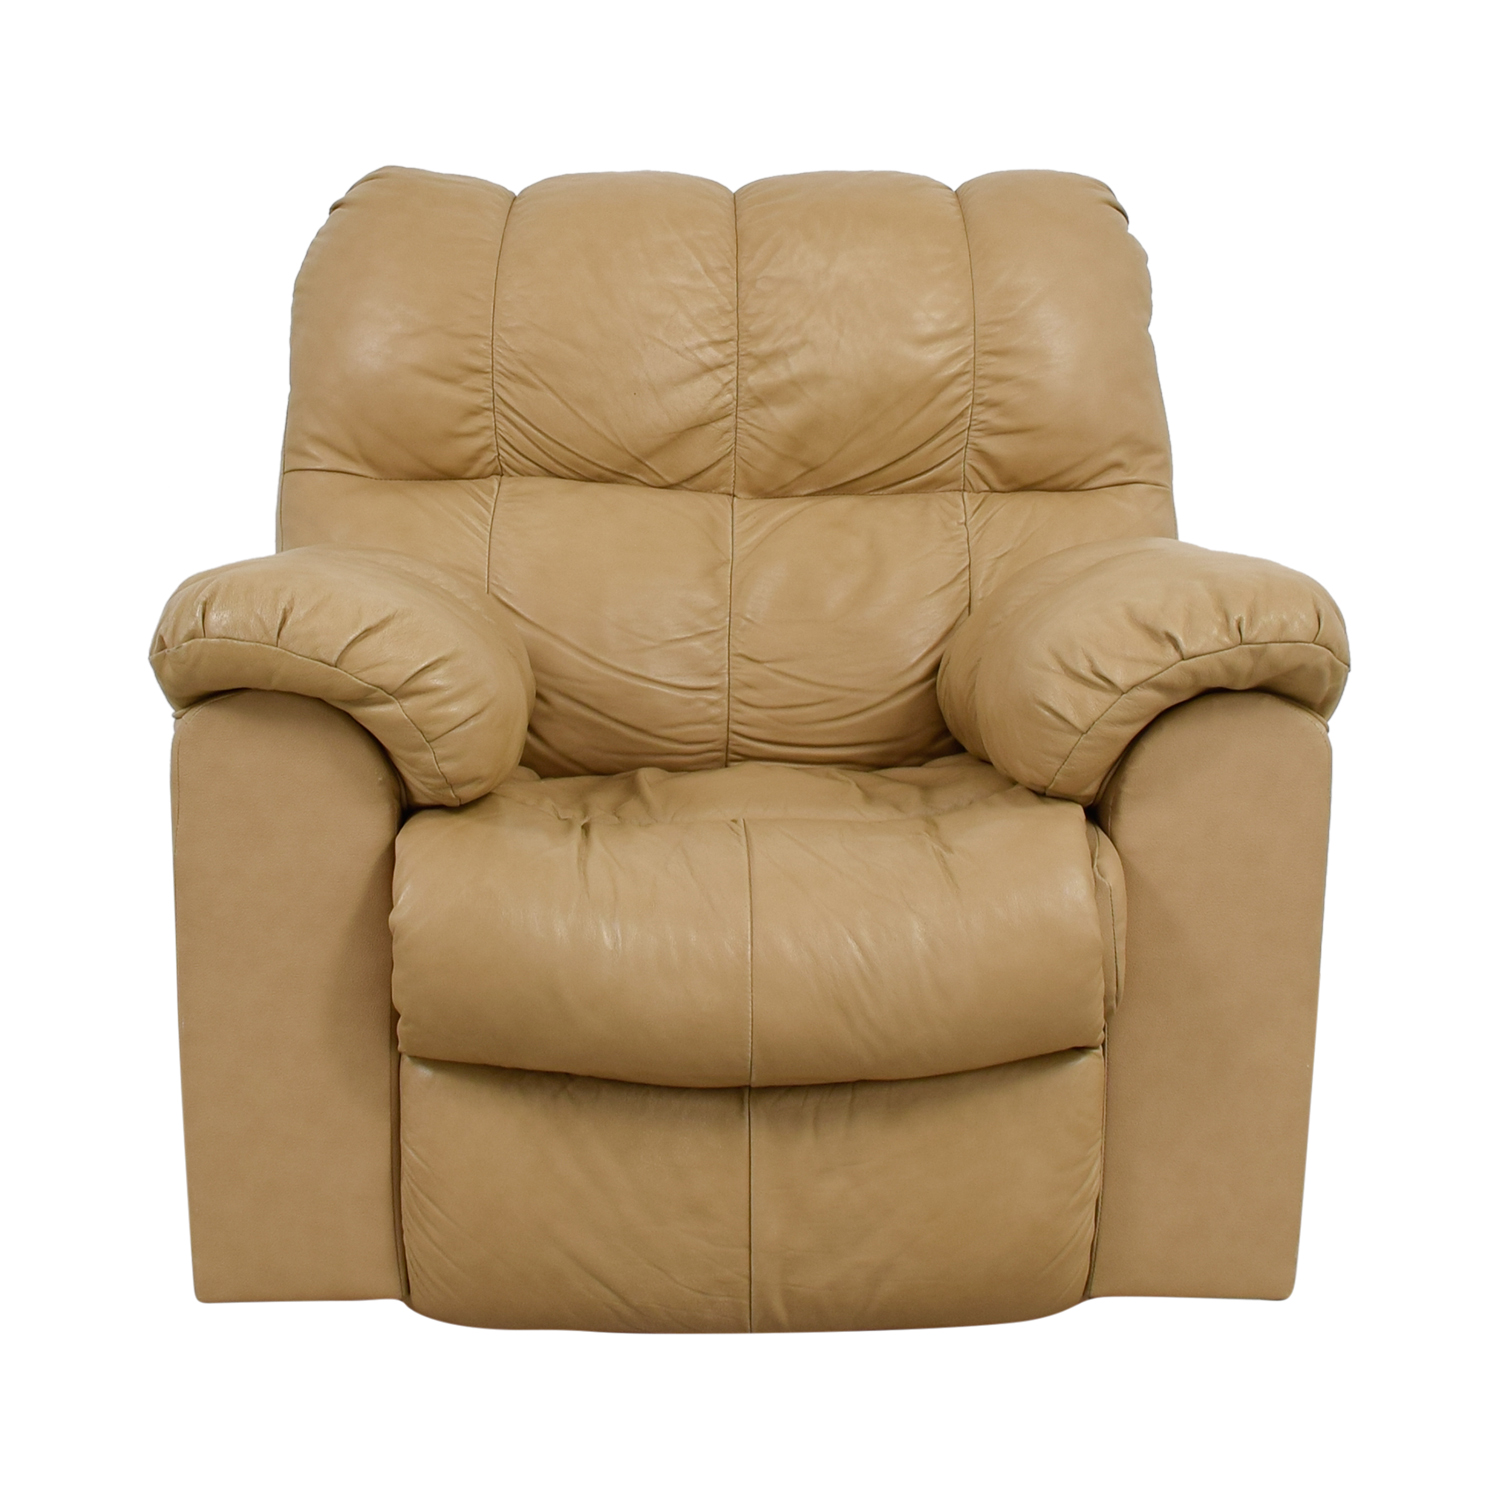 leather recliner chairs on sale gaming chair for ps4 shop quality furniture